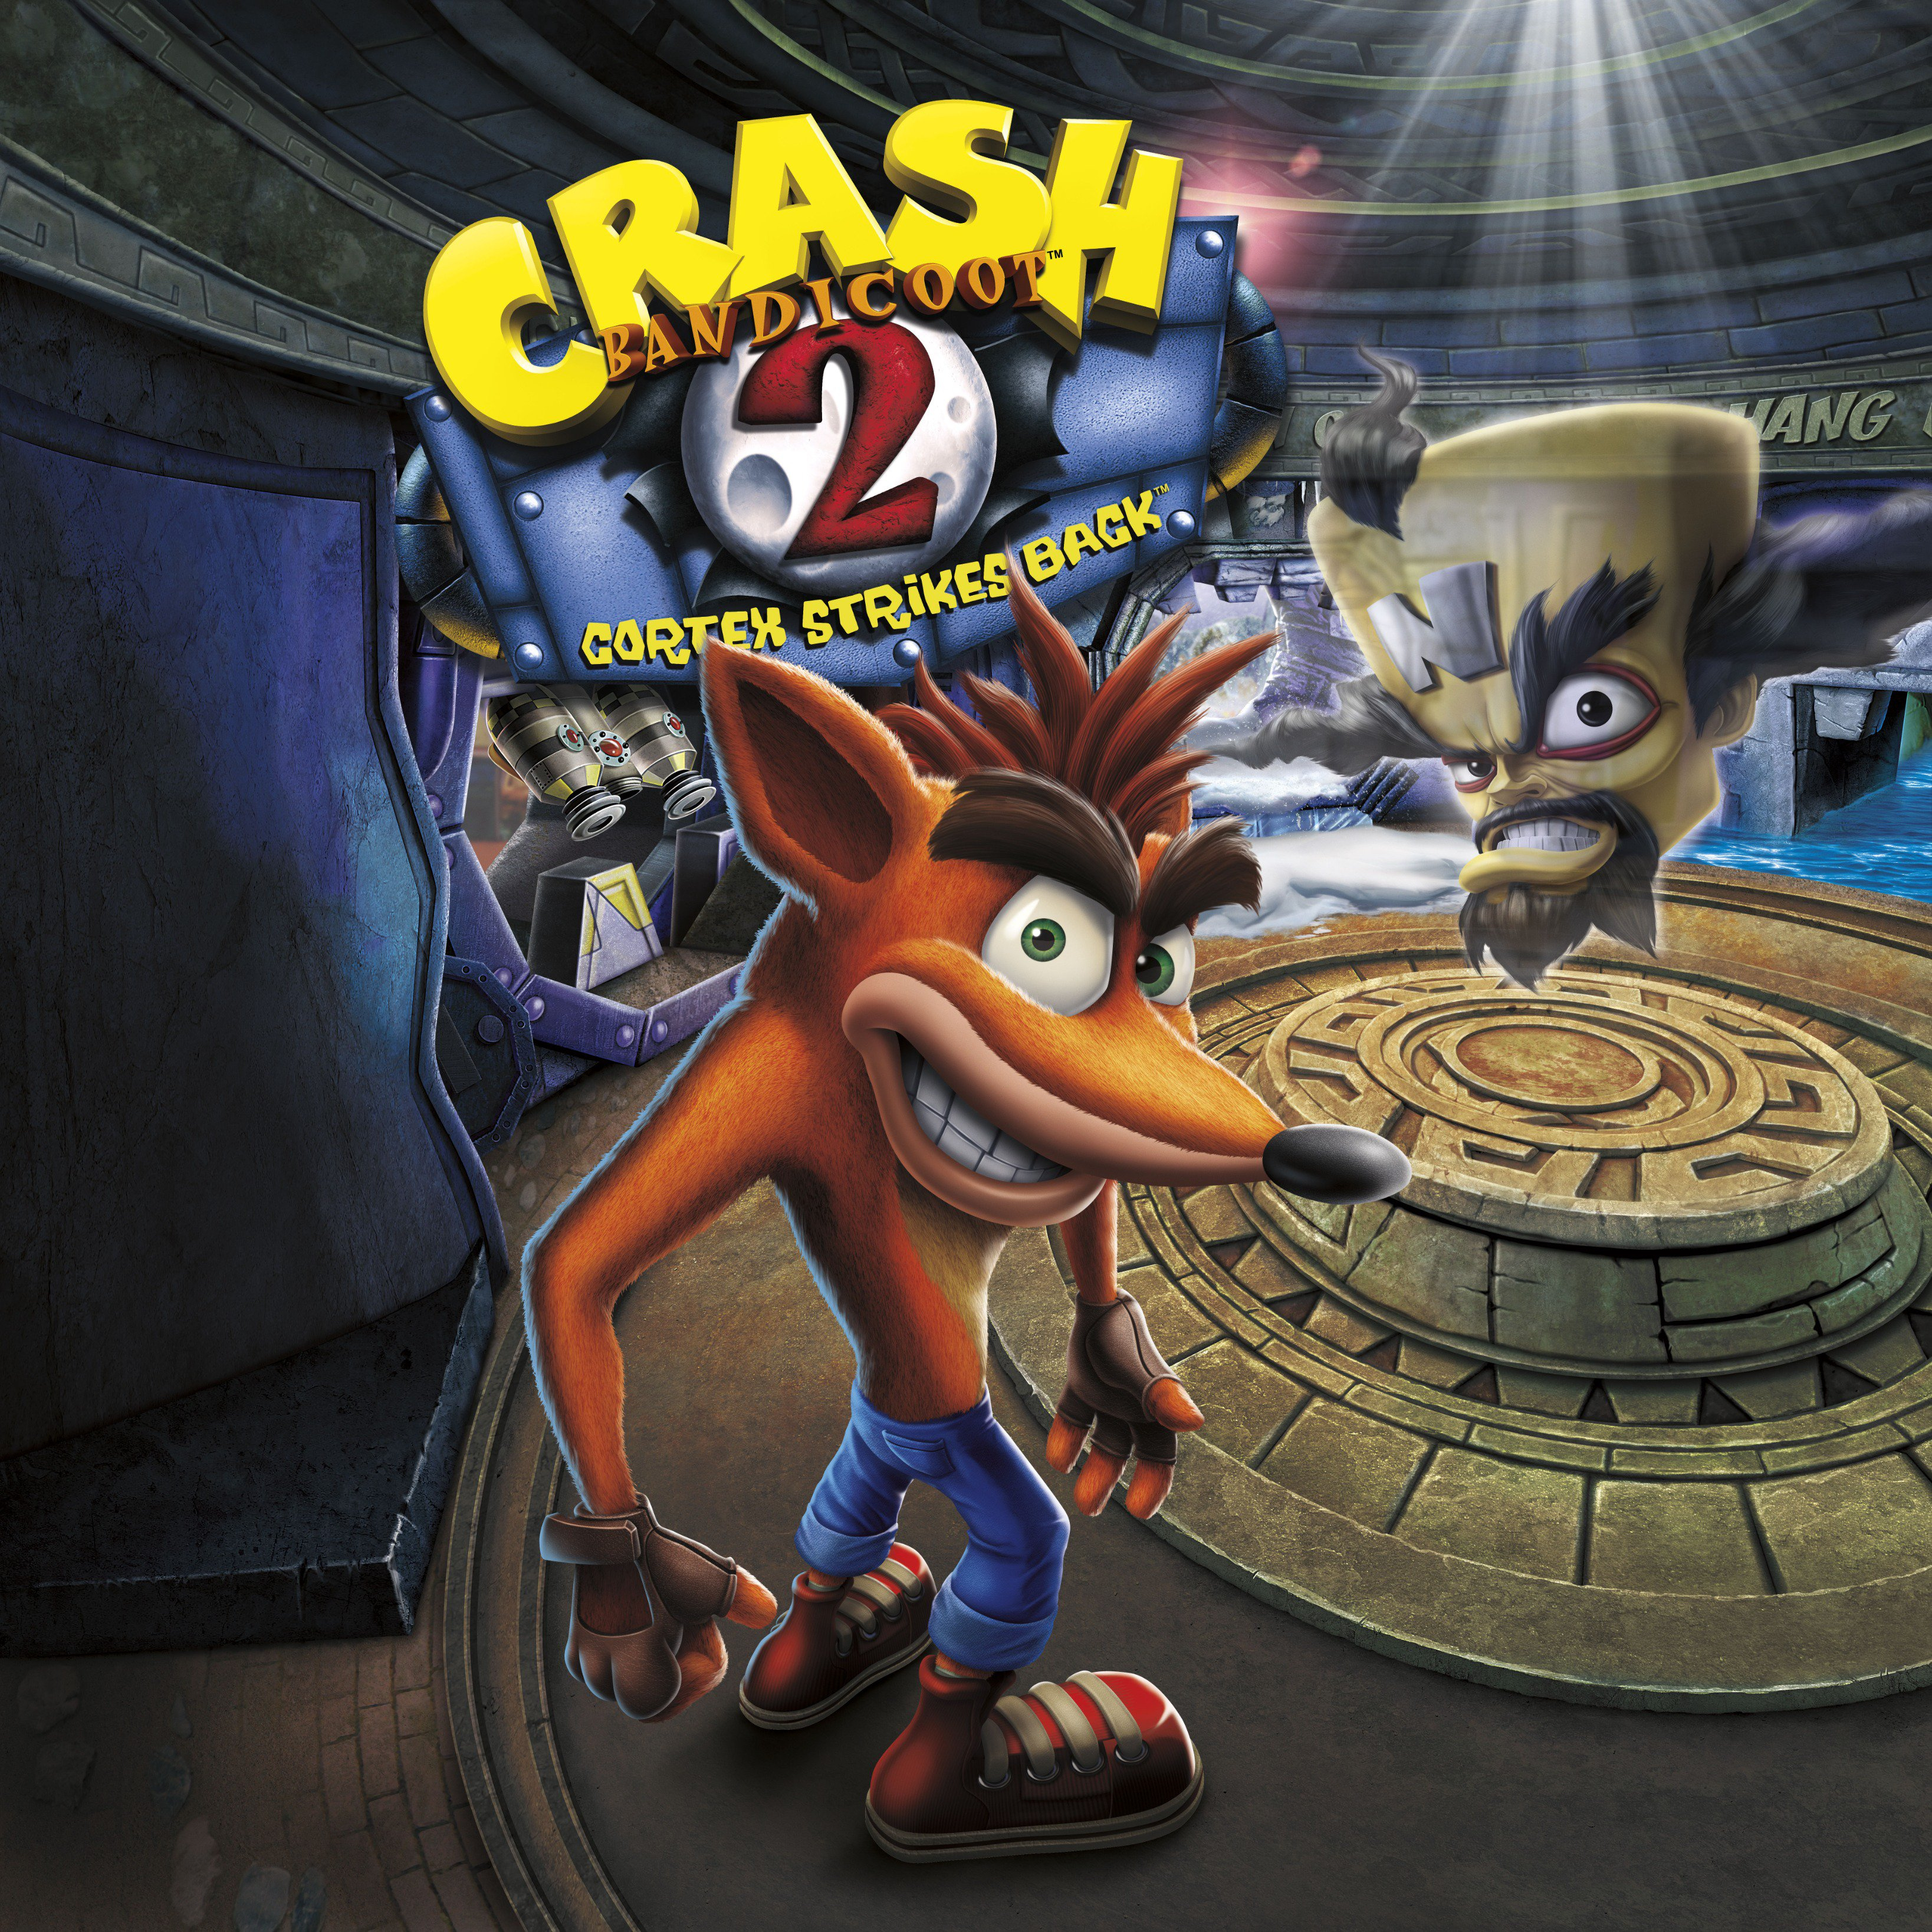 Rumor: A New Crash Bandicoot May Be In Store For 2020